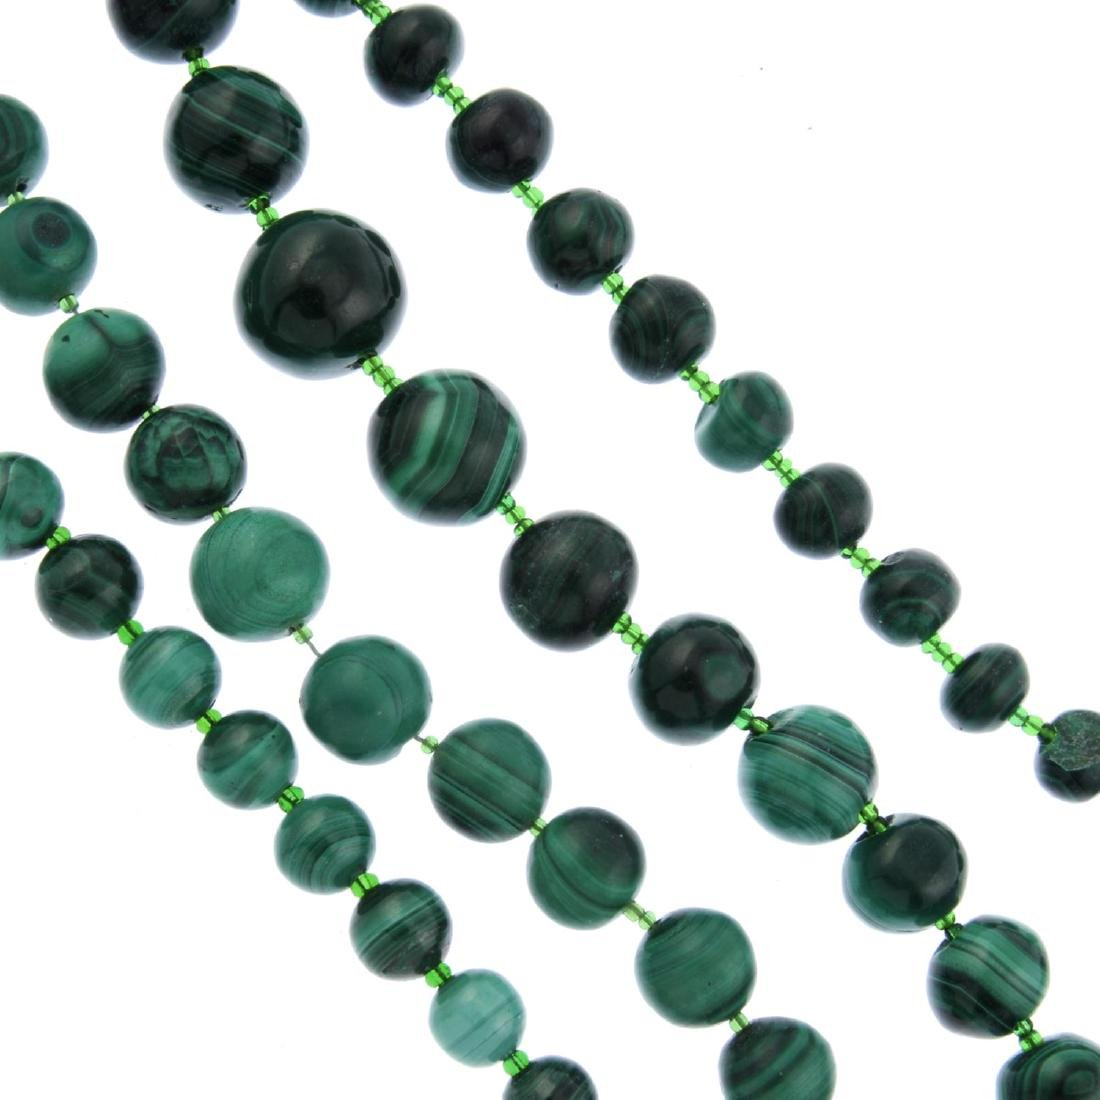 Six malachite necklaces and four garnet necklaces. The